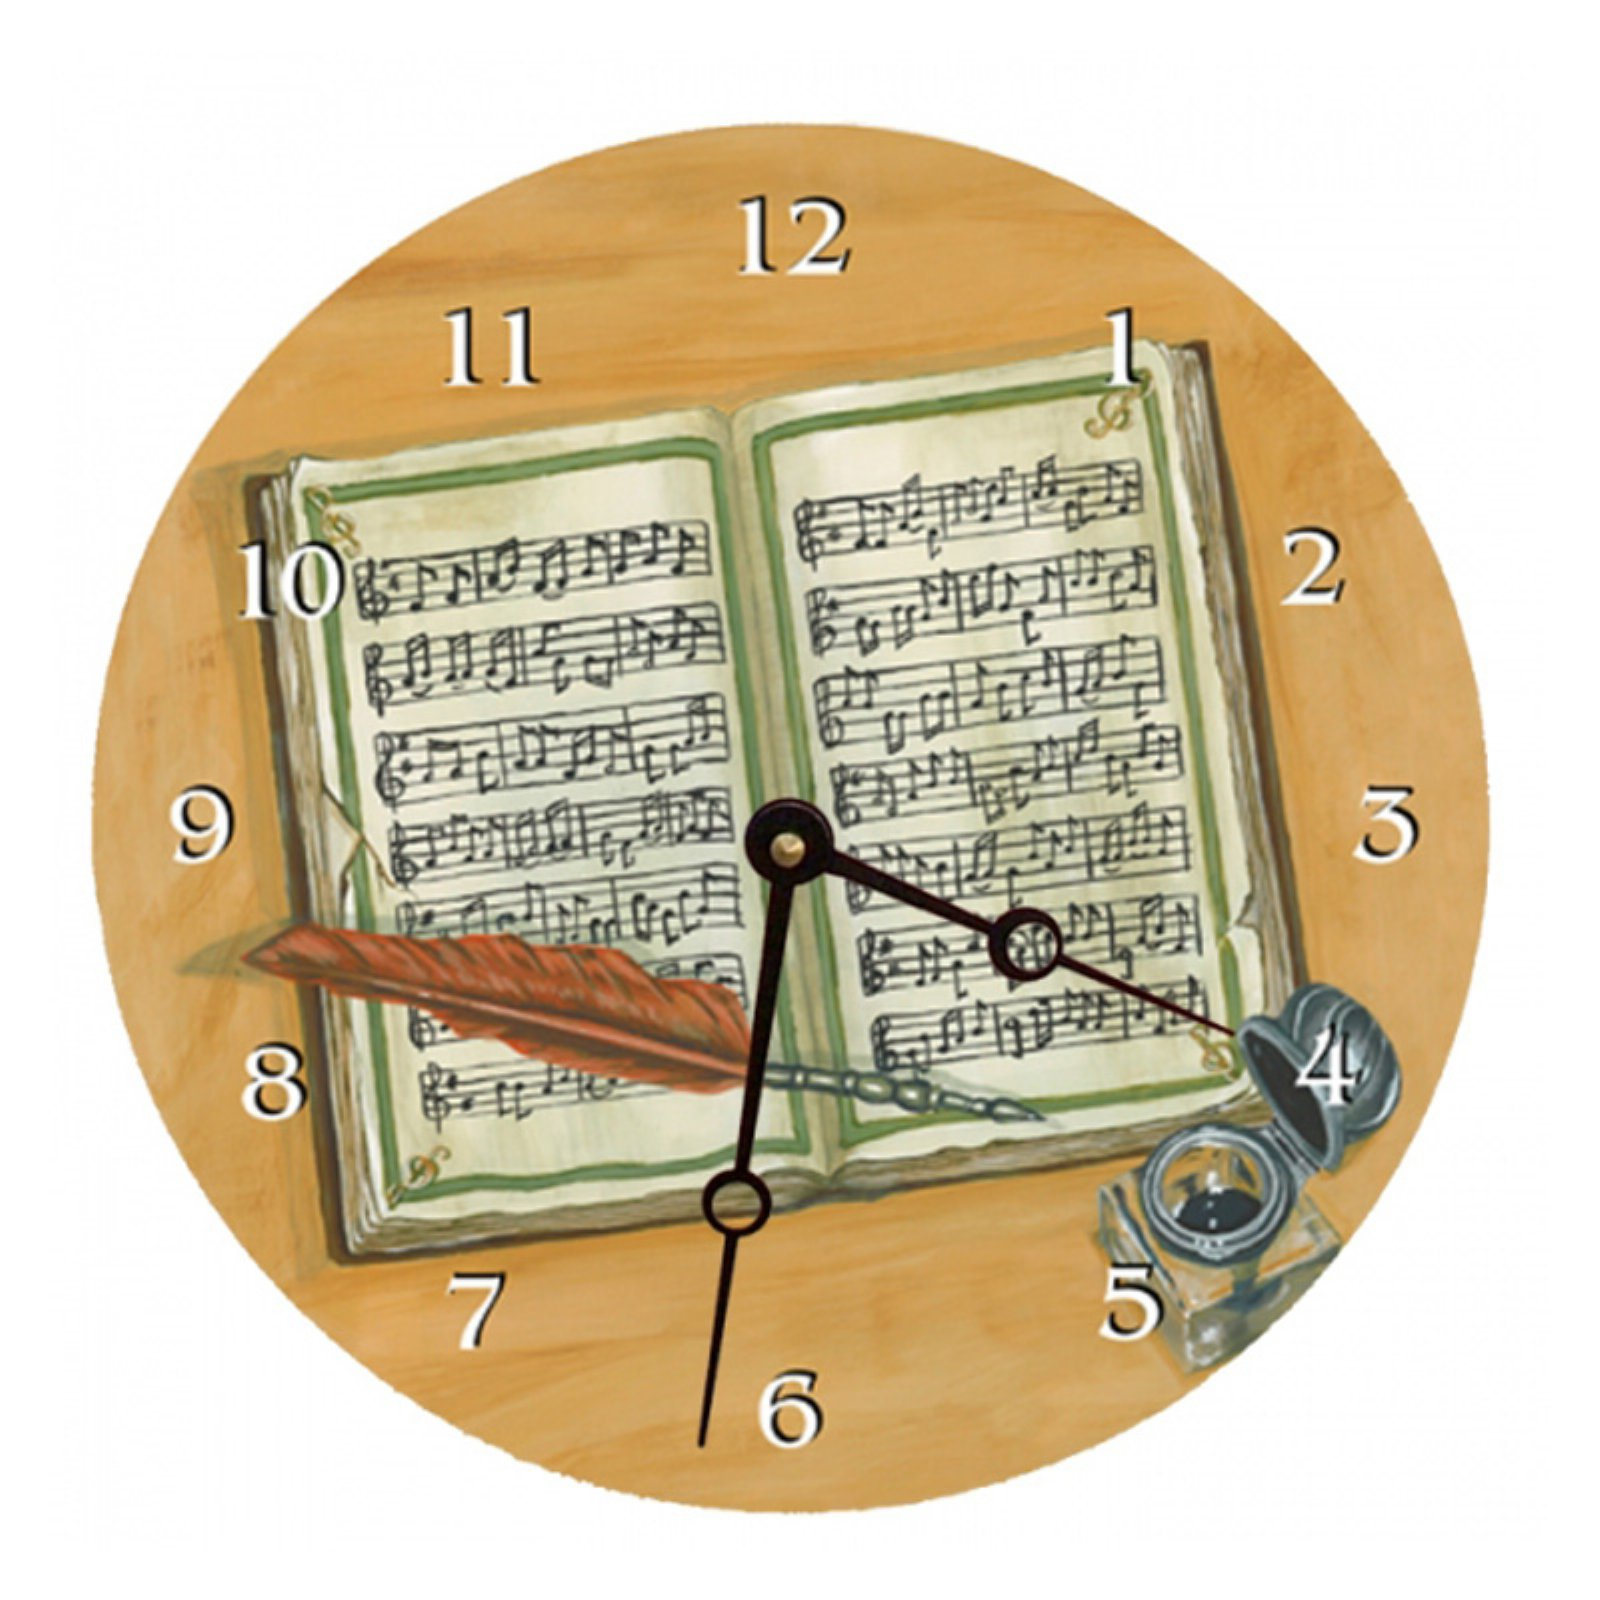 Lexington Studios Composing Wall Clock